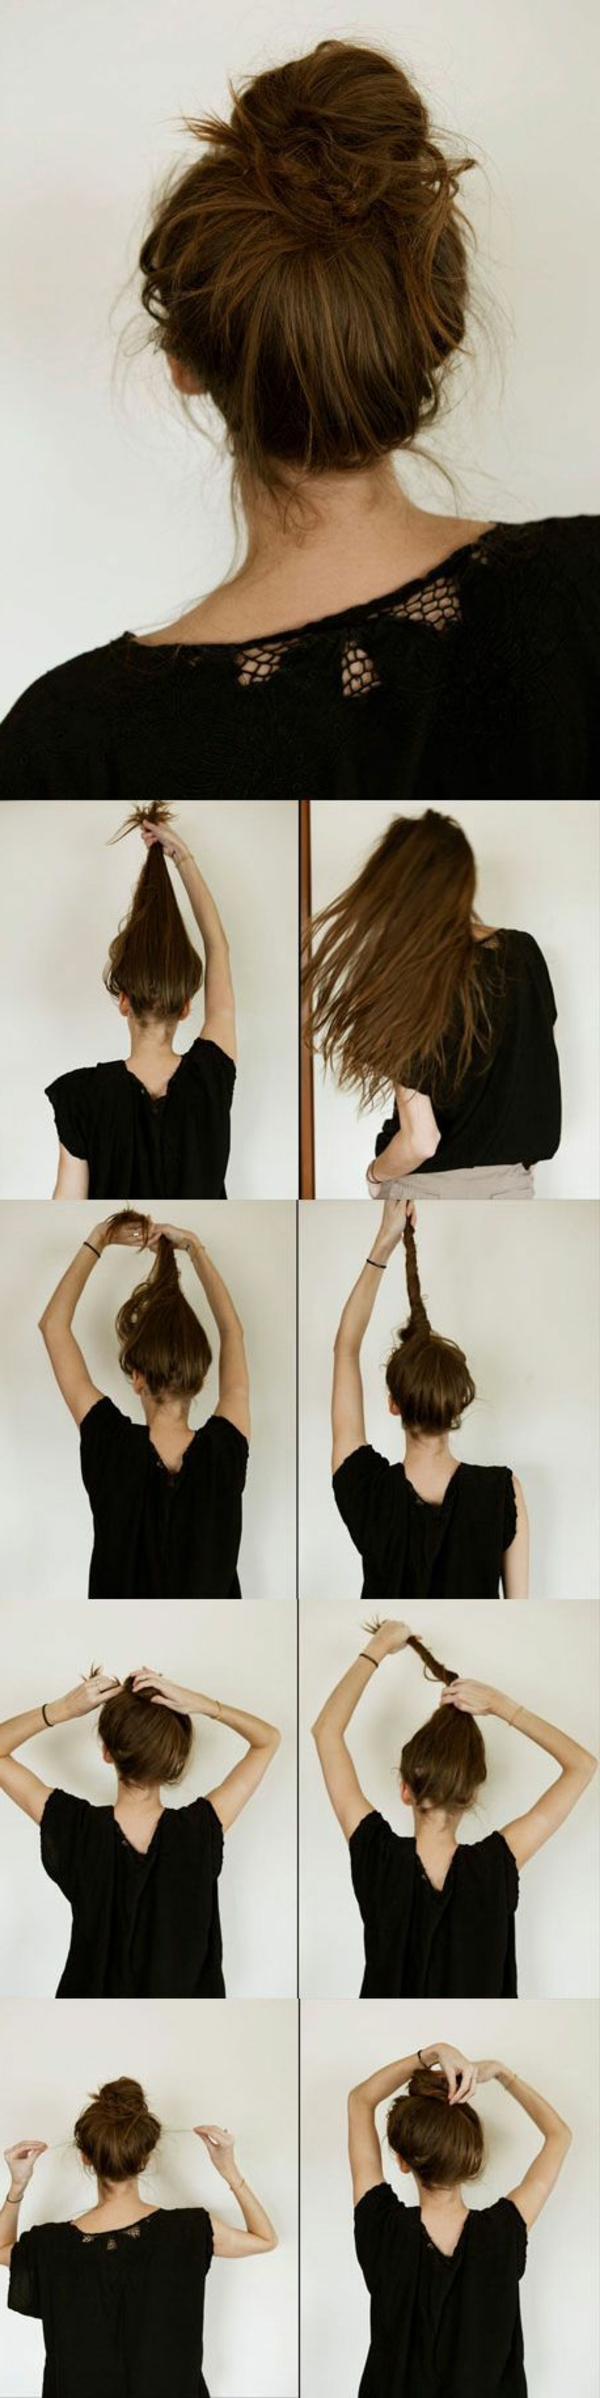 faire-chignon-comment